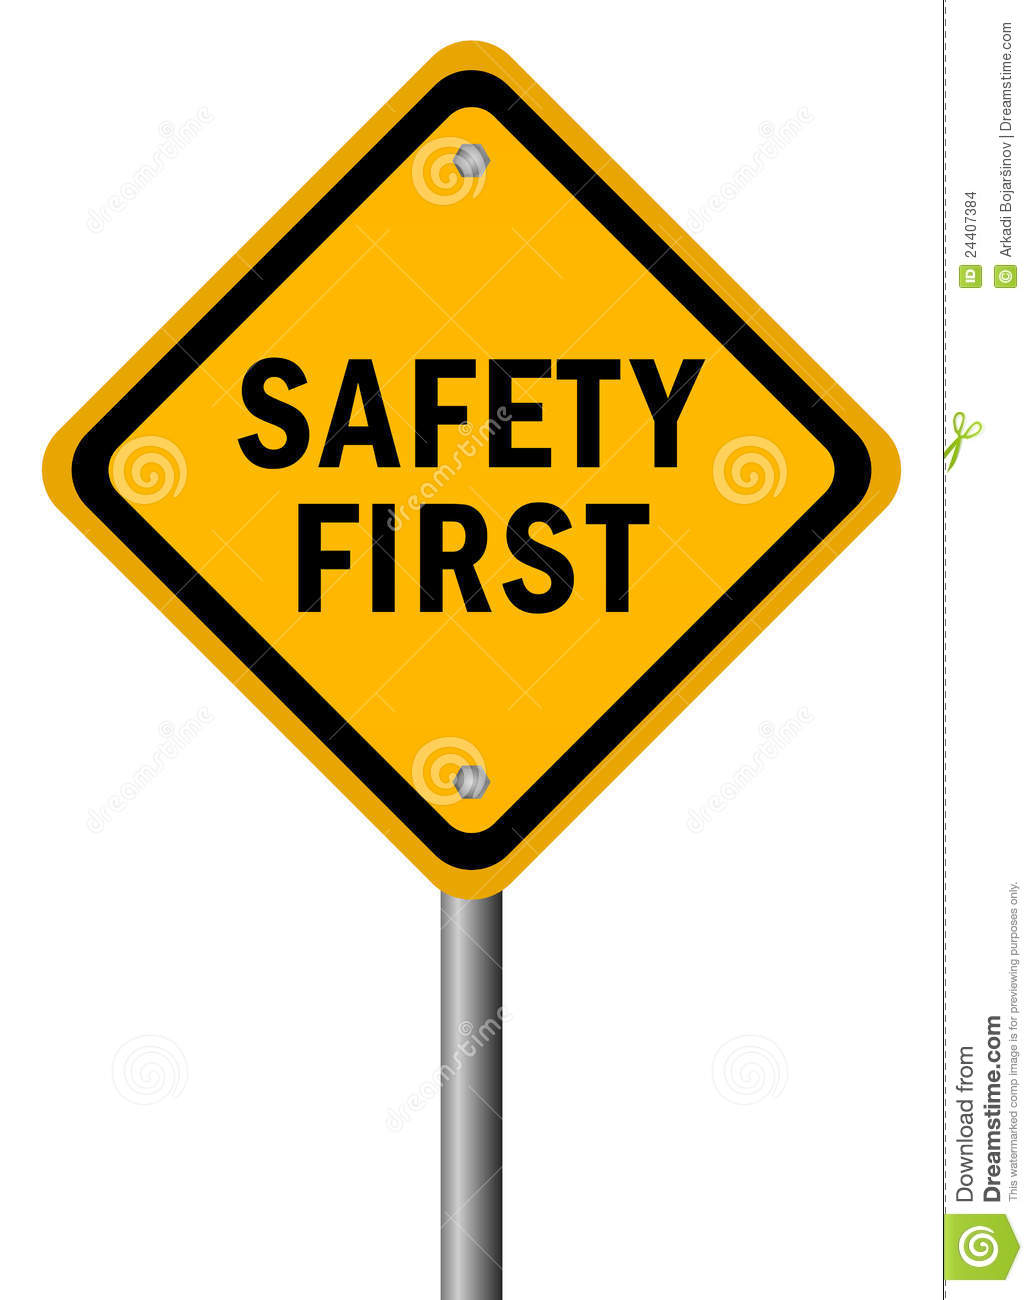 Safety First Clipart Safety First Sign-Safety First Clipart Safety First Sign-14